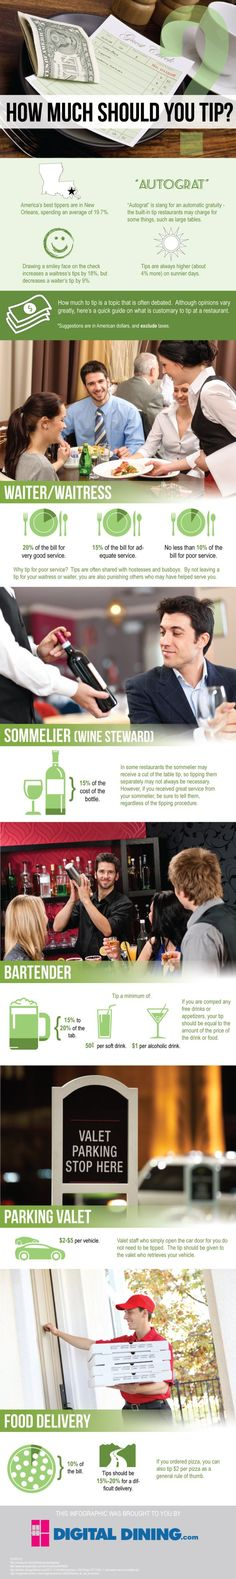 How much should you tip? #infographic